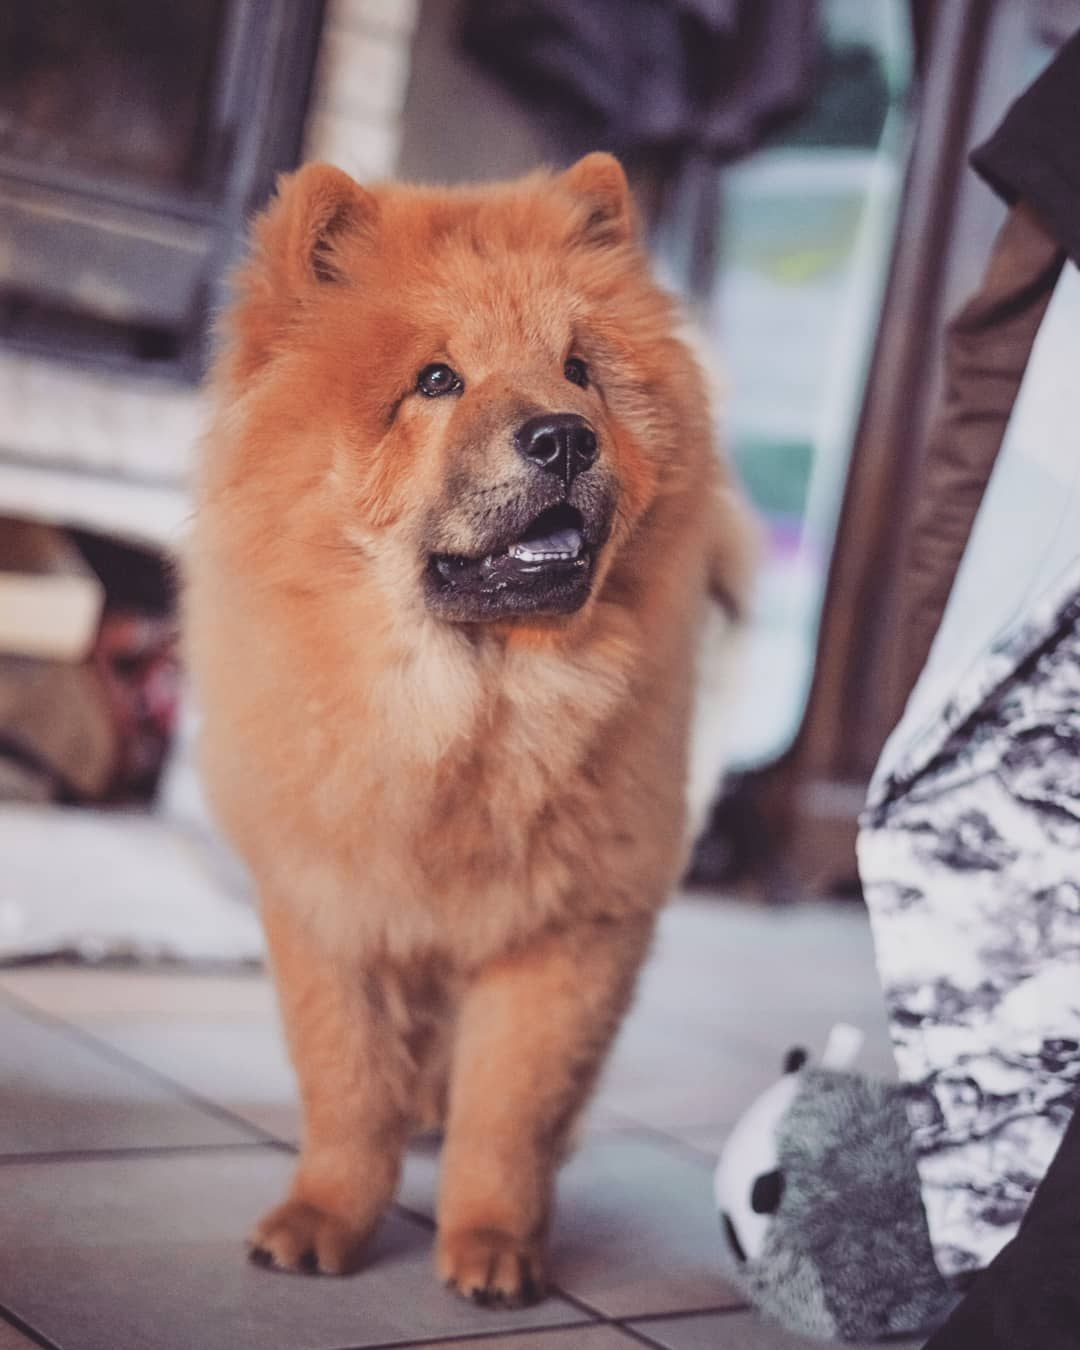 Pin By Debi Ellis On Chow Chow Dogs In 2020 Chow Chow Dogs Chow